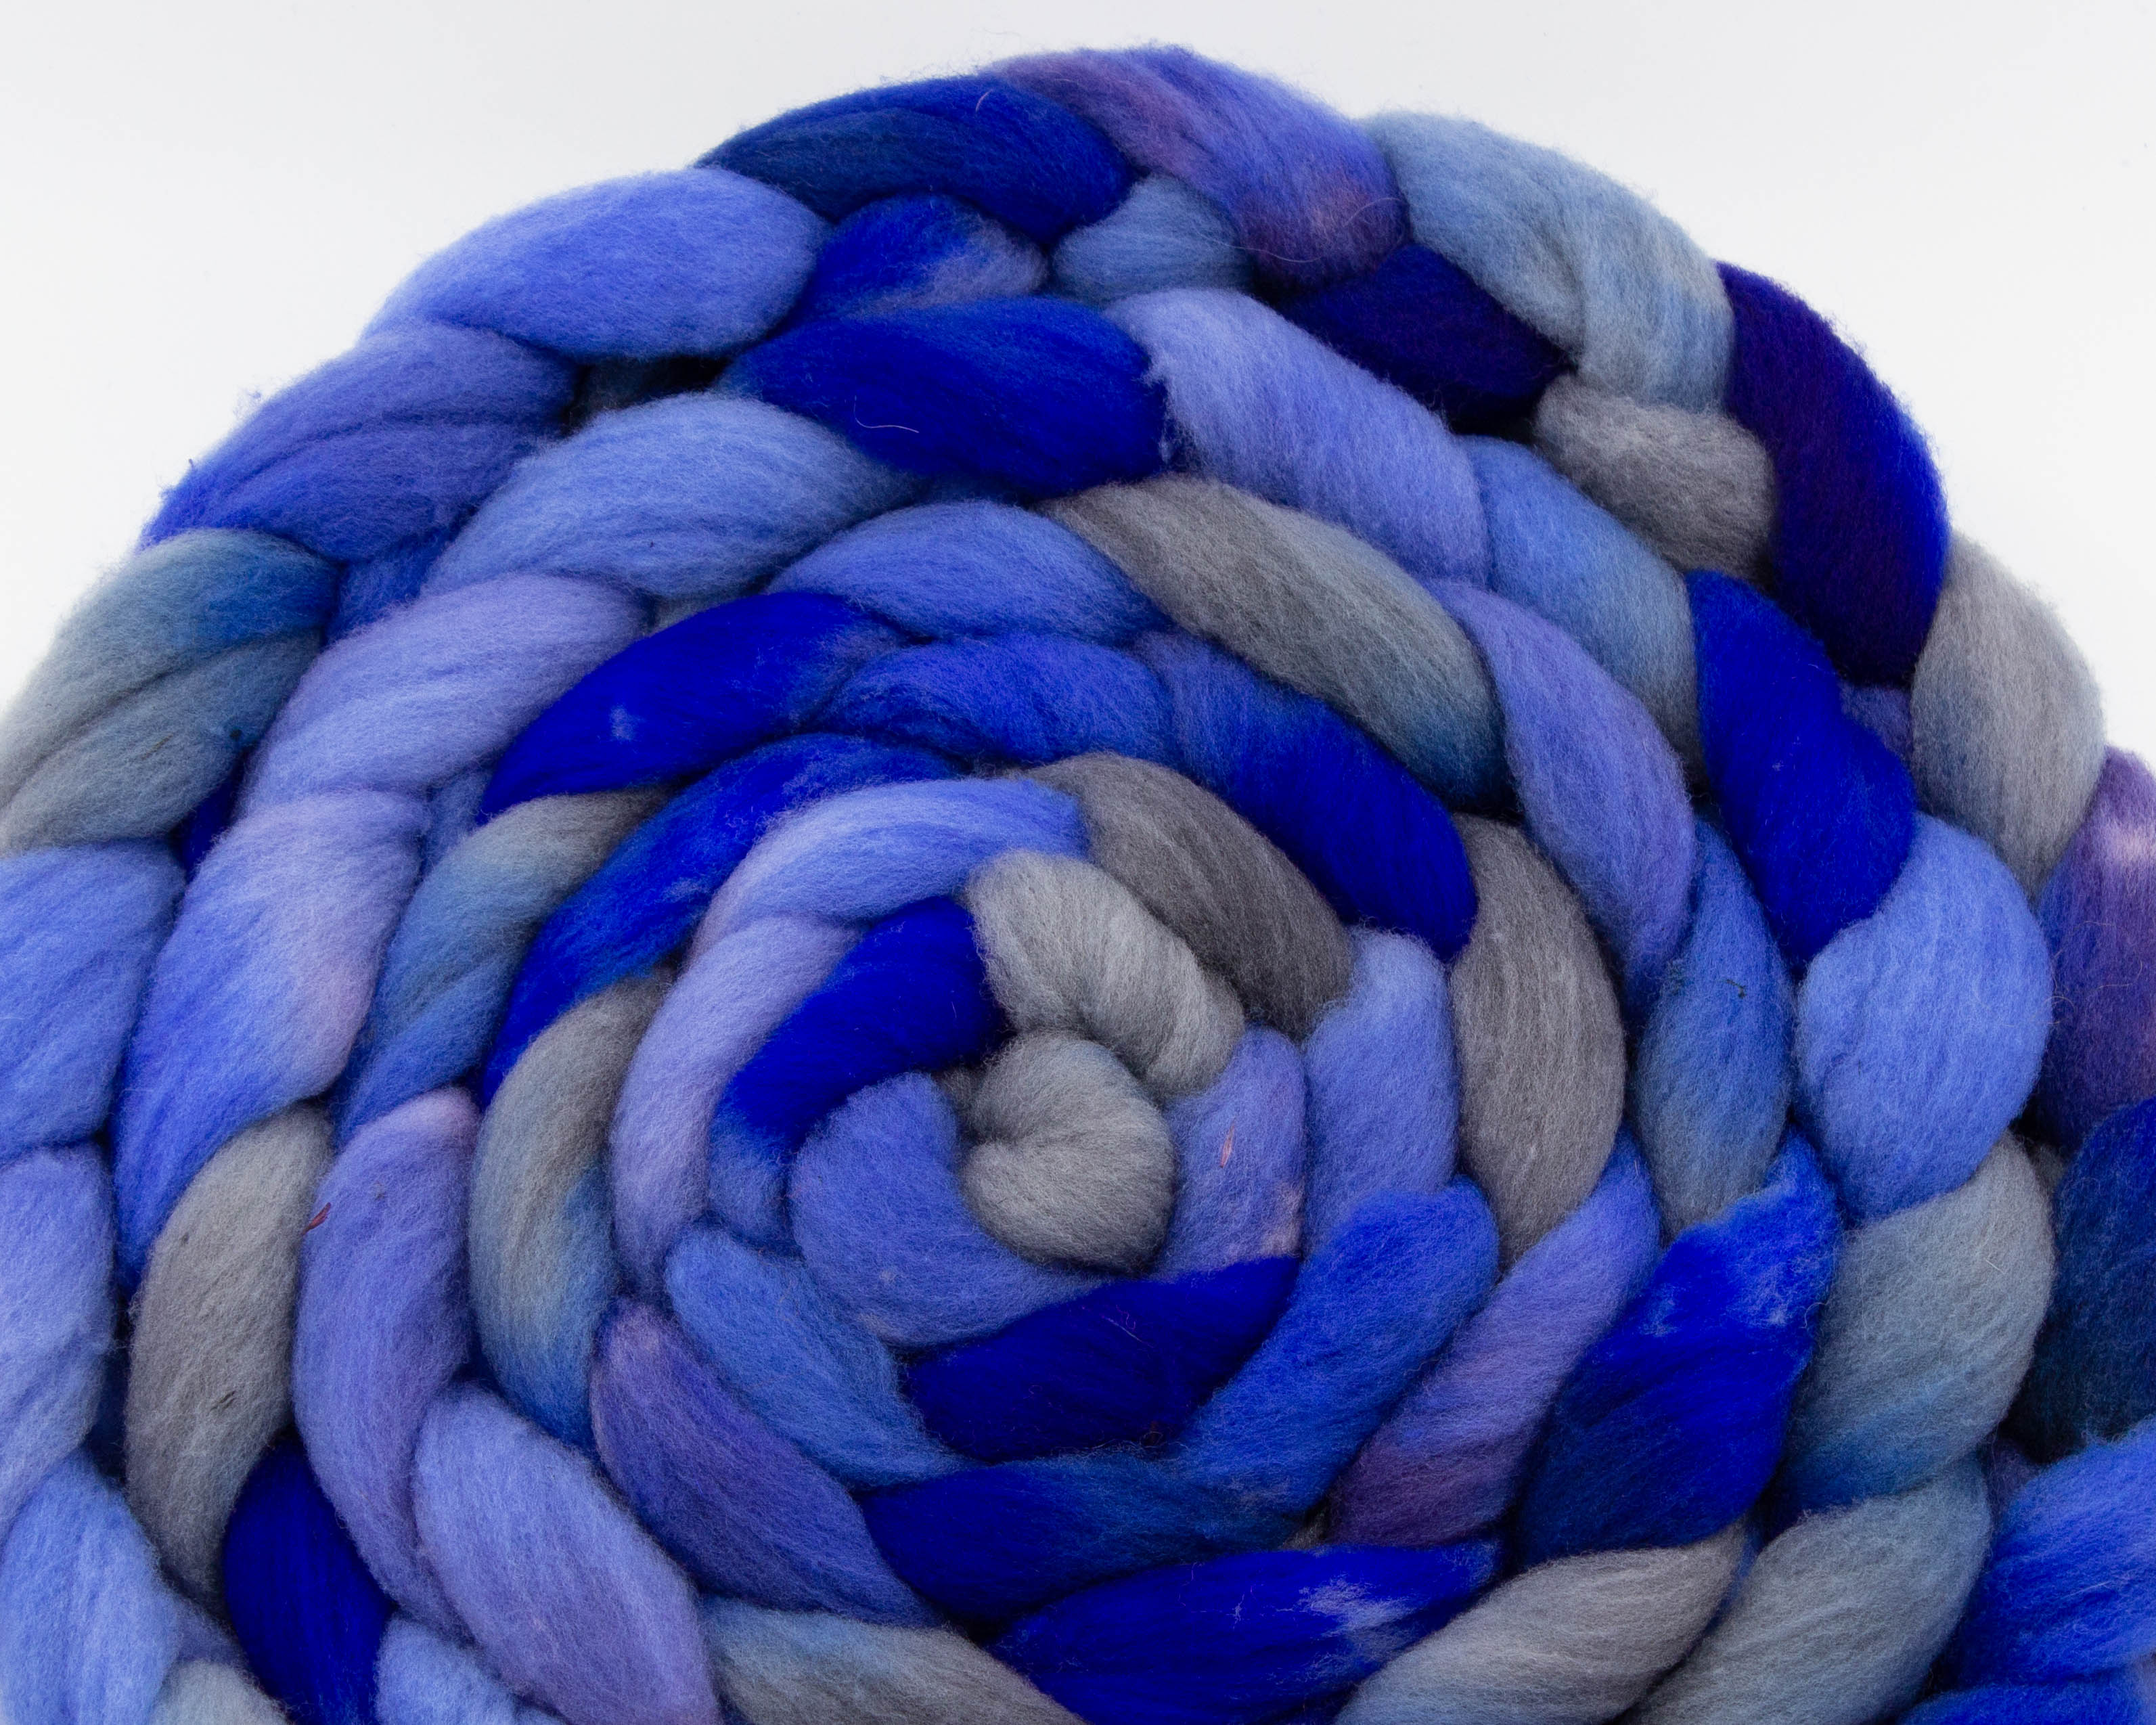 braided Rambouillet roving - lavender, blue, and grey